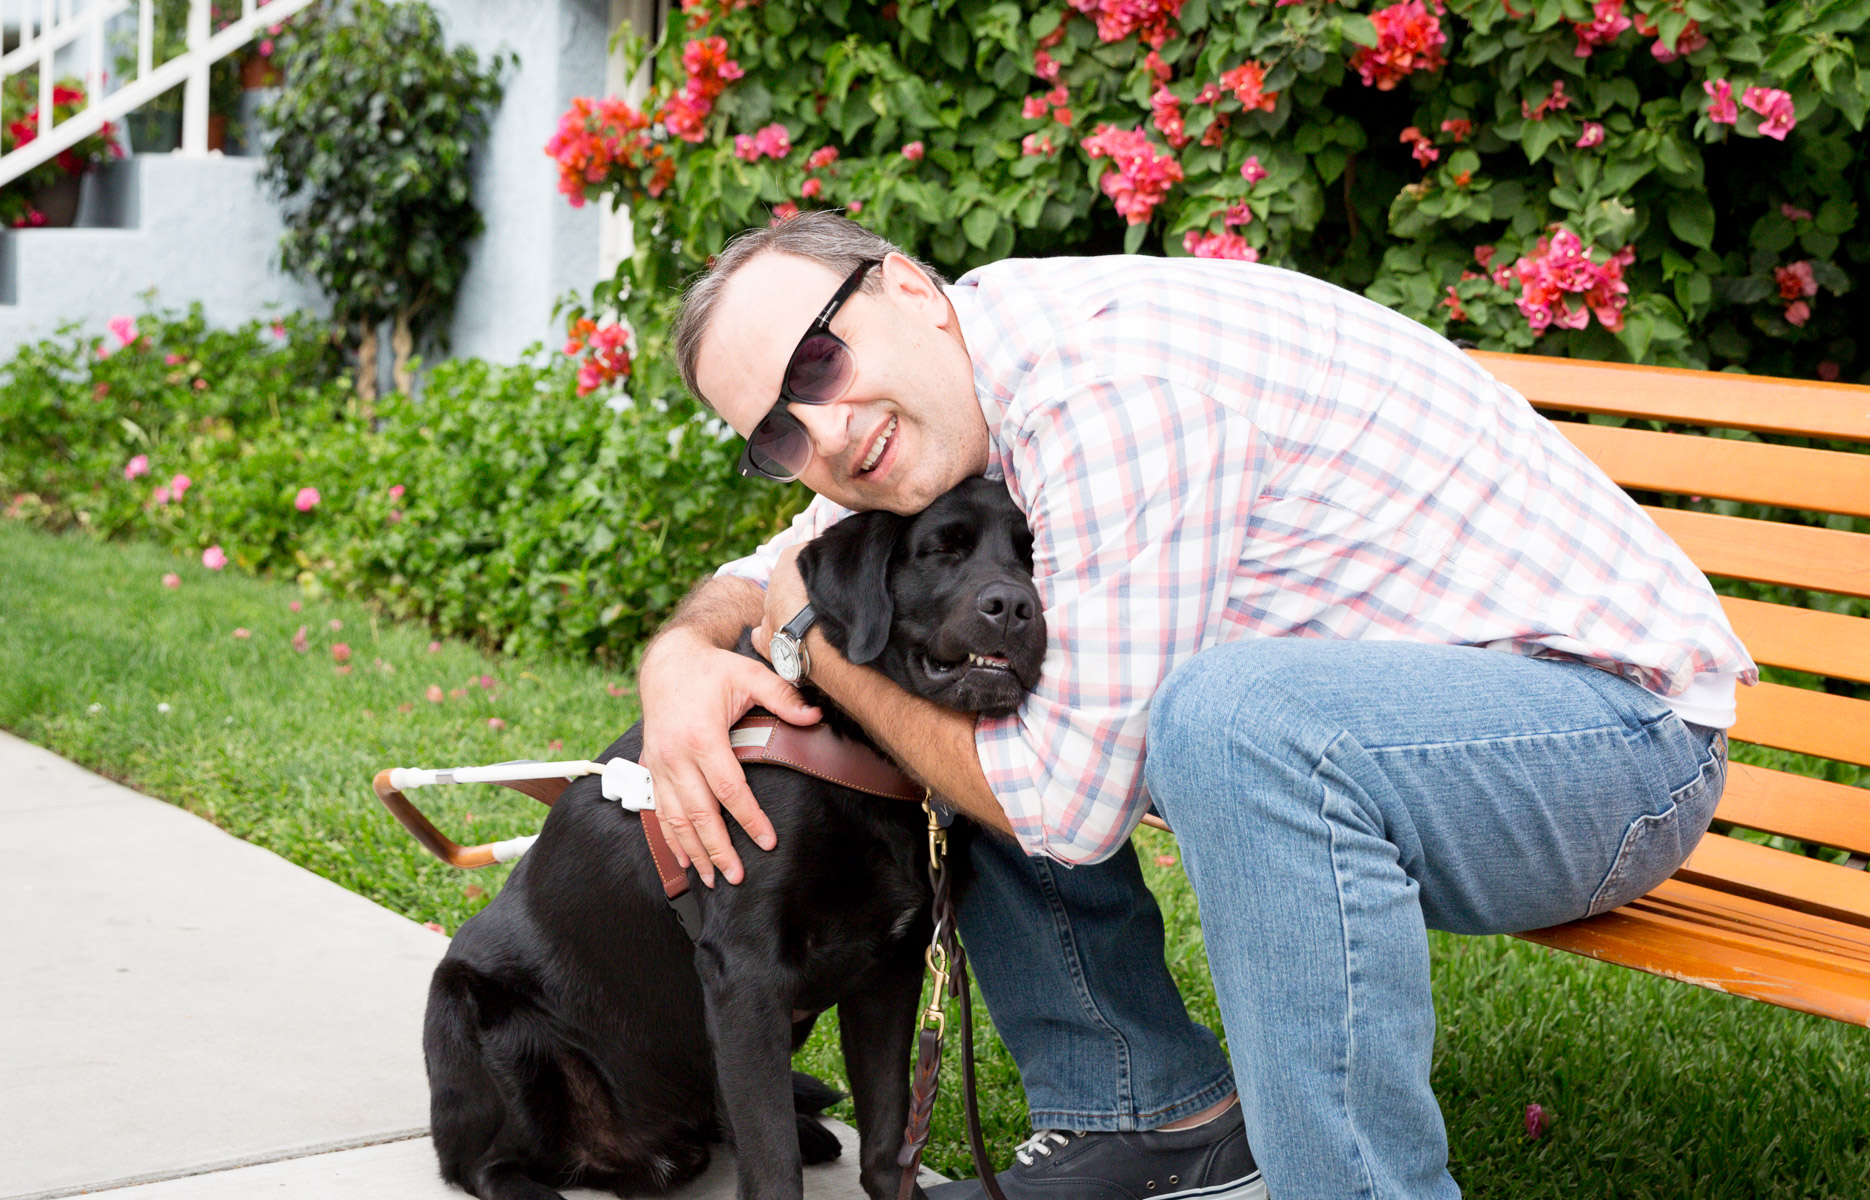 visual-impaired-man-with-his-guidance-dog-hugginh-black-labrador-pet-photography